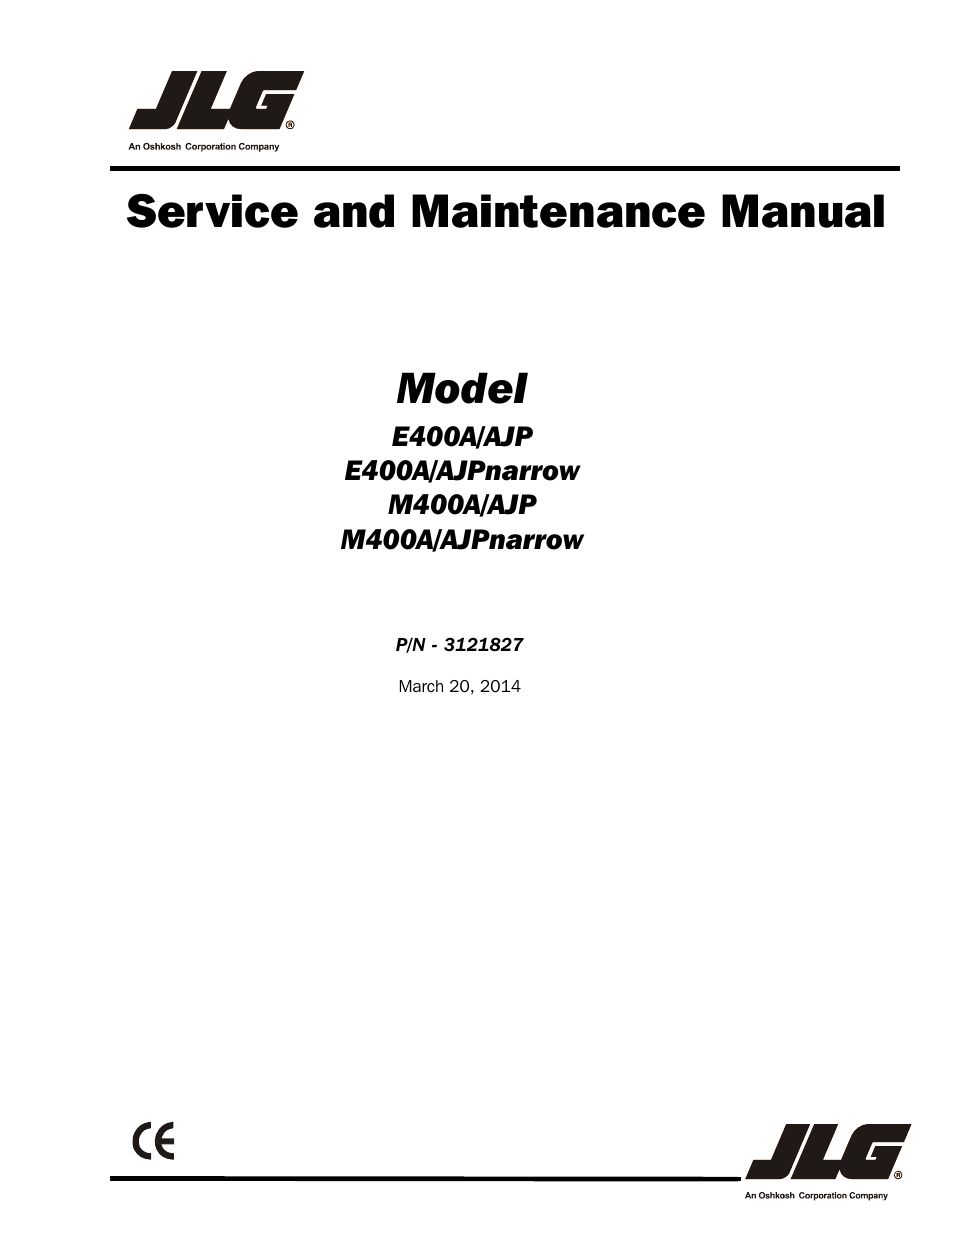 JLG M400 Service Manual Service Manual User Manual | 258 pages | Also for:  E400 Service Manual Service Manual